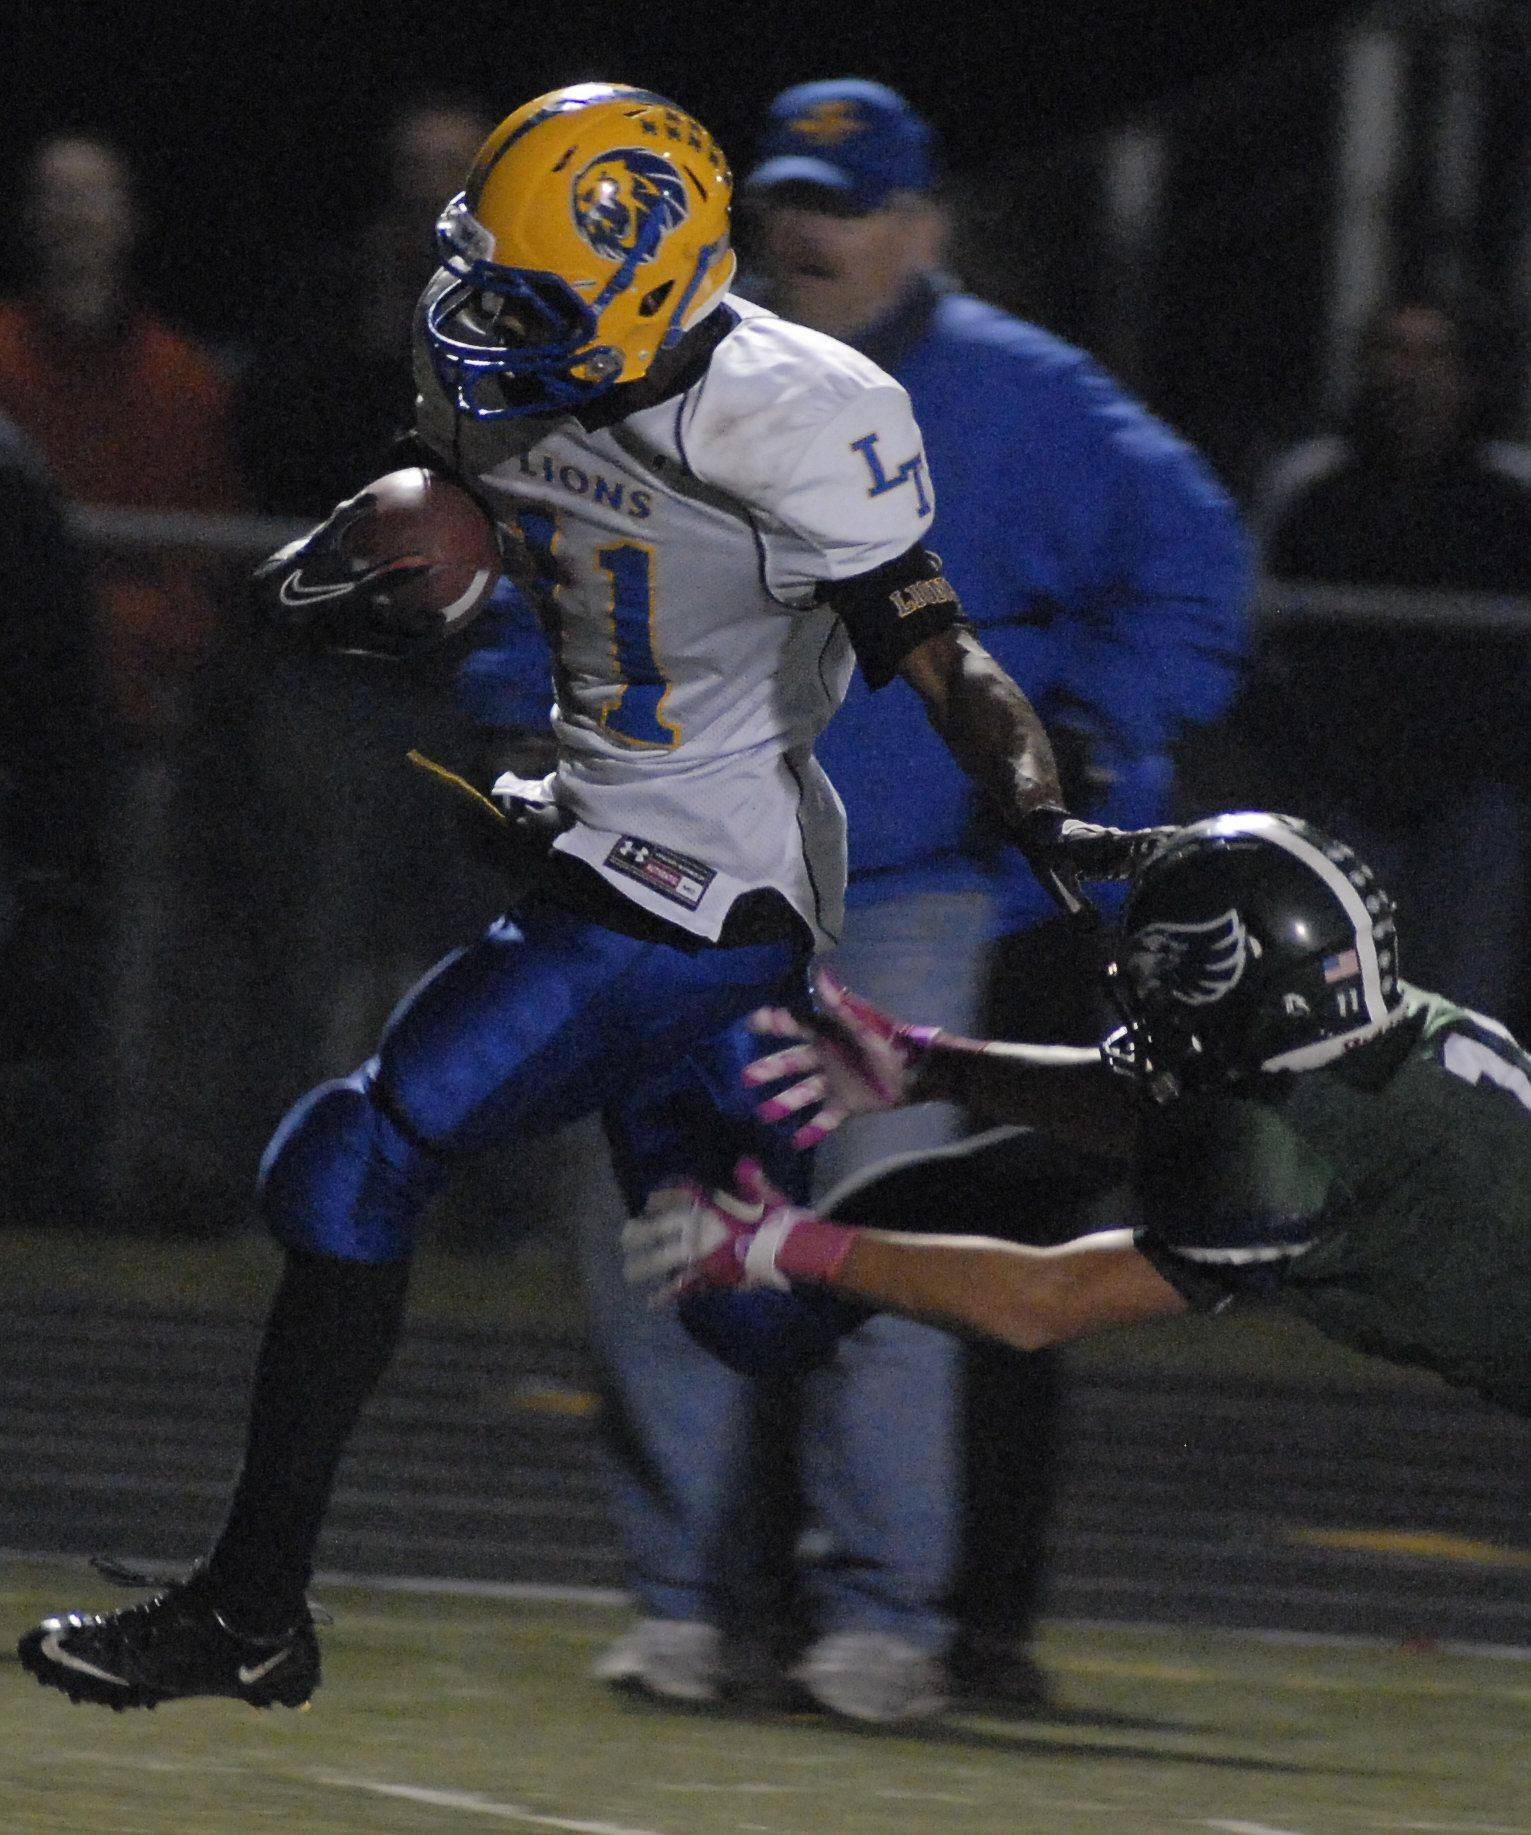 Laura Stoecker/lstoecker@dailyherald.com Playoffs - Round One - Images from Lyons Township vs. Bartlett football Saturday, October 29, 2011.